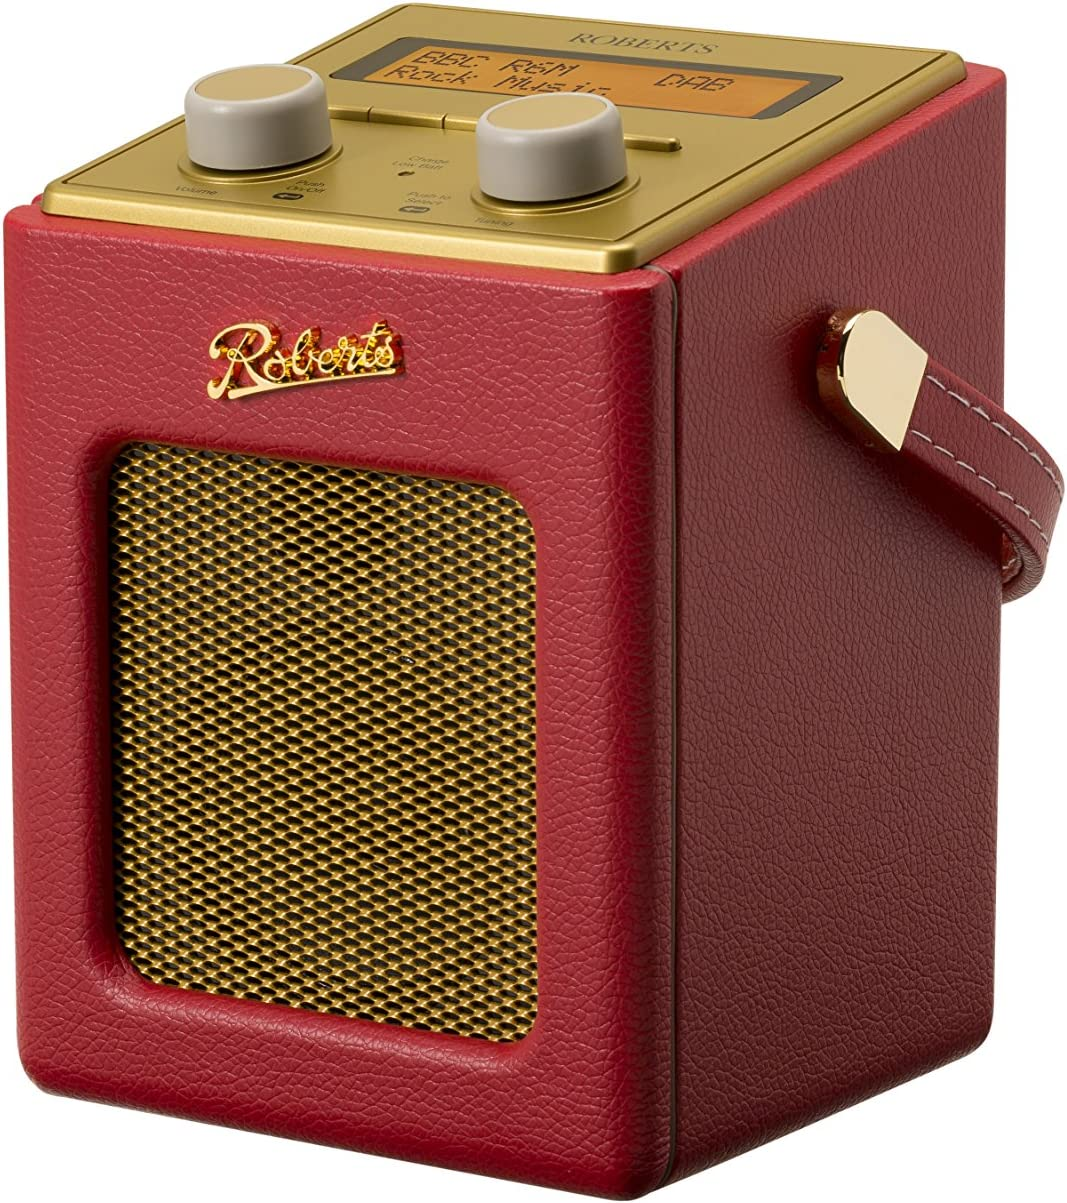 Roberts Radio Revival Mini DAB/DAB+/FM Digital Radio Red